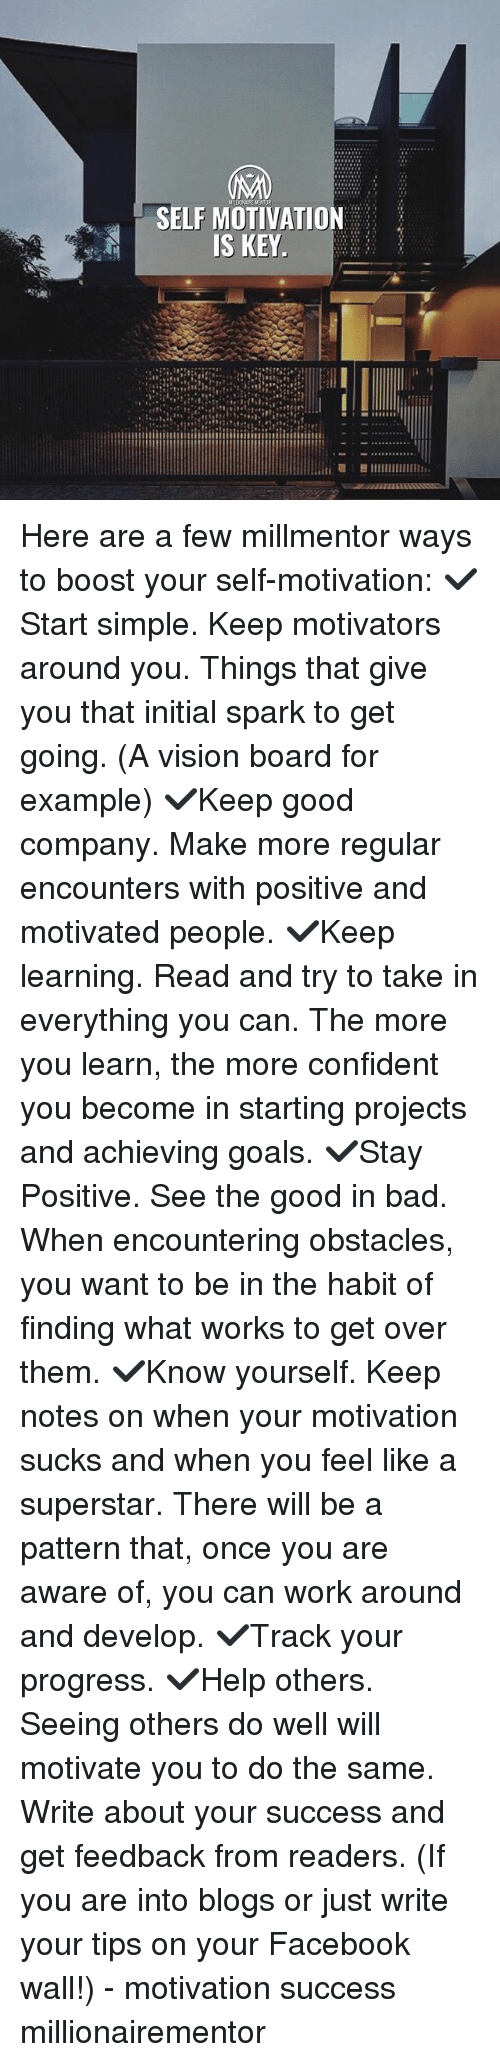 Bad, Facebook, and Goals: SELF MOTIVATION  S KEY Here are a few millmentor ways to boost your self-motivation: ✔️Start simple. Keep motivators around you. Things that give you that initial spark to get going. (A vision board for example) ✔️Keep good company. Make more regular encounters with positive and motivated people. ✔️Keep learning. Read and try to take in everything you can. The more you learn, the more confident you become in starting projects and achieving goals. ✔️Stay Positive. See the good in bad. When encountering obstacles, you want to be in the habit of finding what works to get over them. ✔️Know yourself. Keep notes on when your motivation sucks and when you feel like a superstar. There will be a pattern that, once you are aware of, you can work around and develop. ✔️Track your progress. ✔️Help others. Seeing others do well will motivate you to do the same. Write about your success and get feedback from readers. (If you are into blogs or just write your tips on your Facebook wall!) - motivation success millionairementor